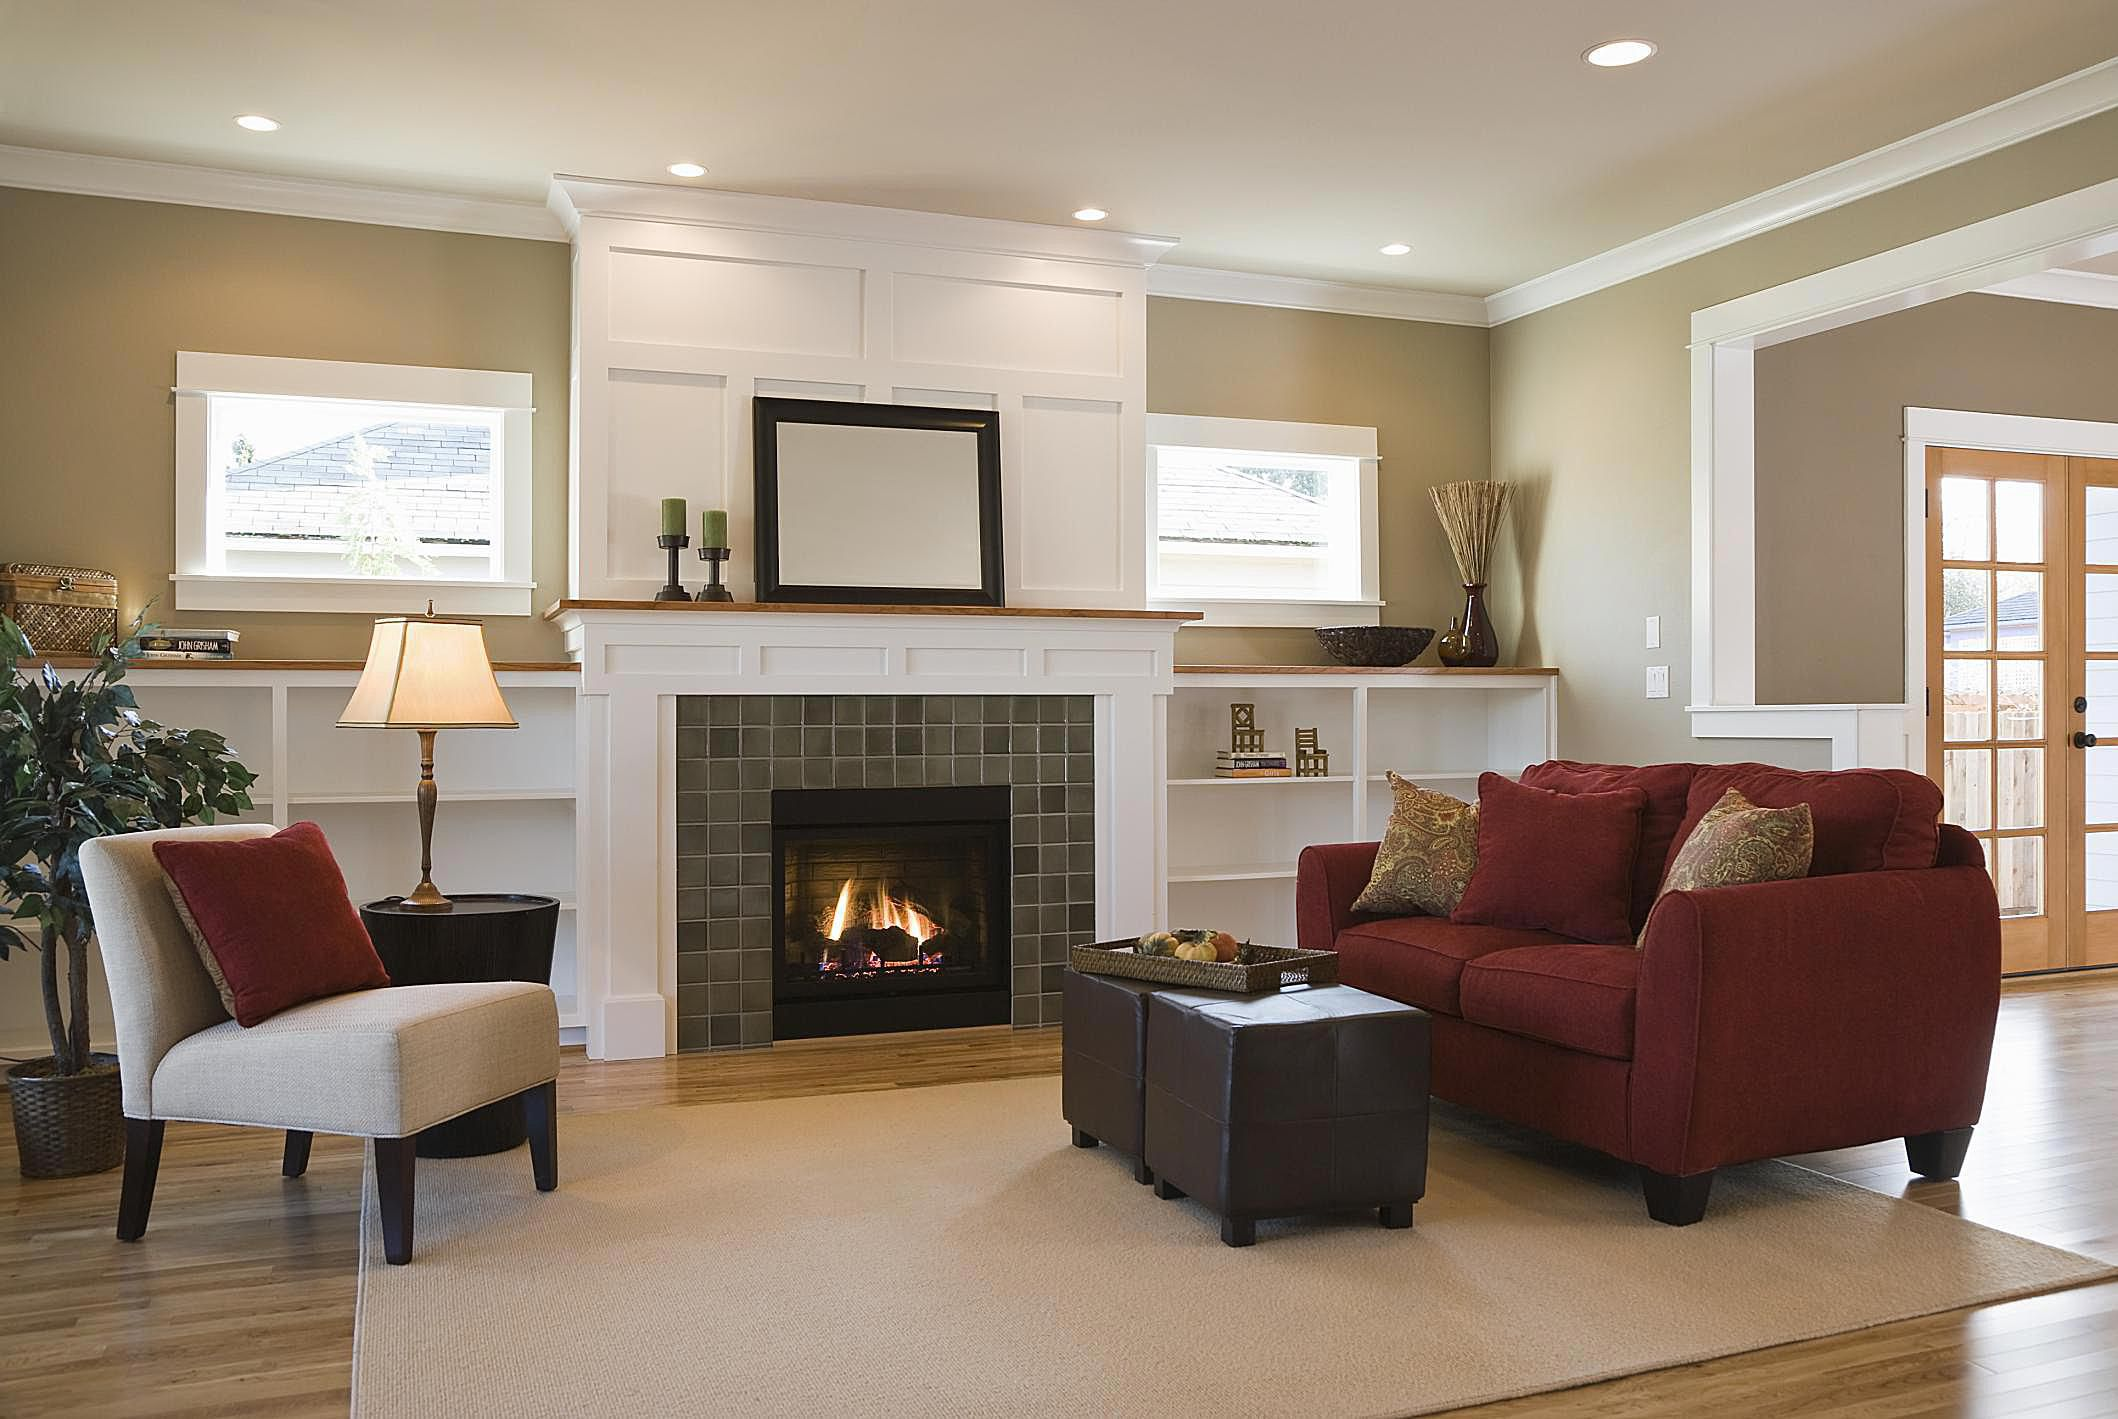 the best living room design ideas on a budget - Decorating Ideas For Living Rooms With Fireplaces